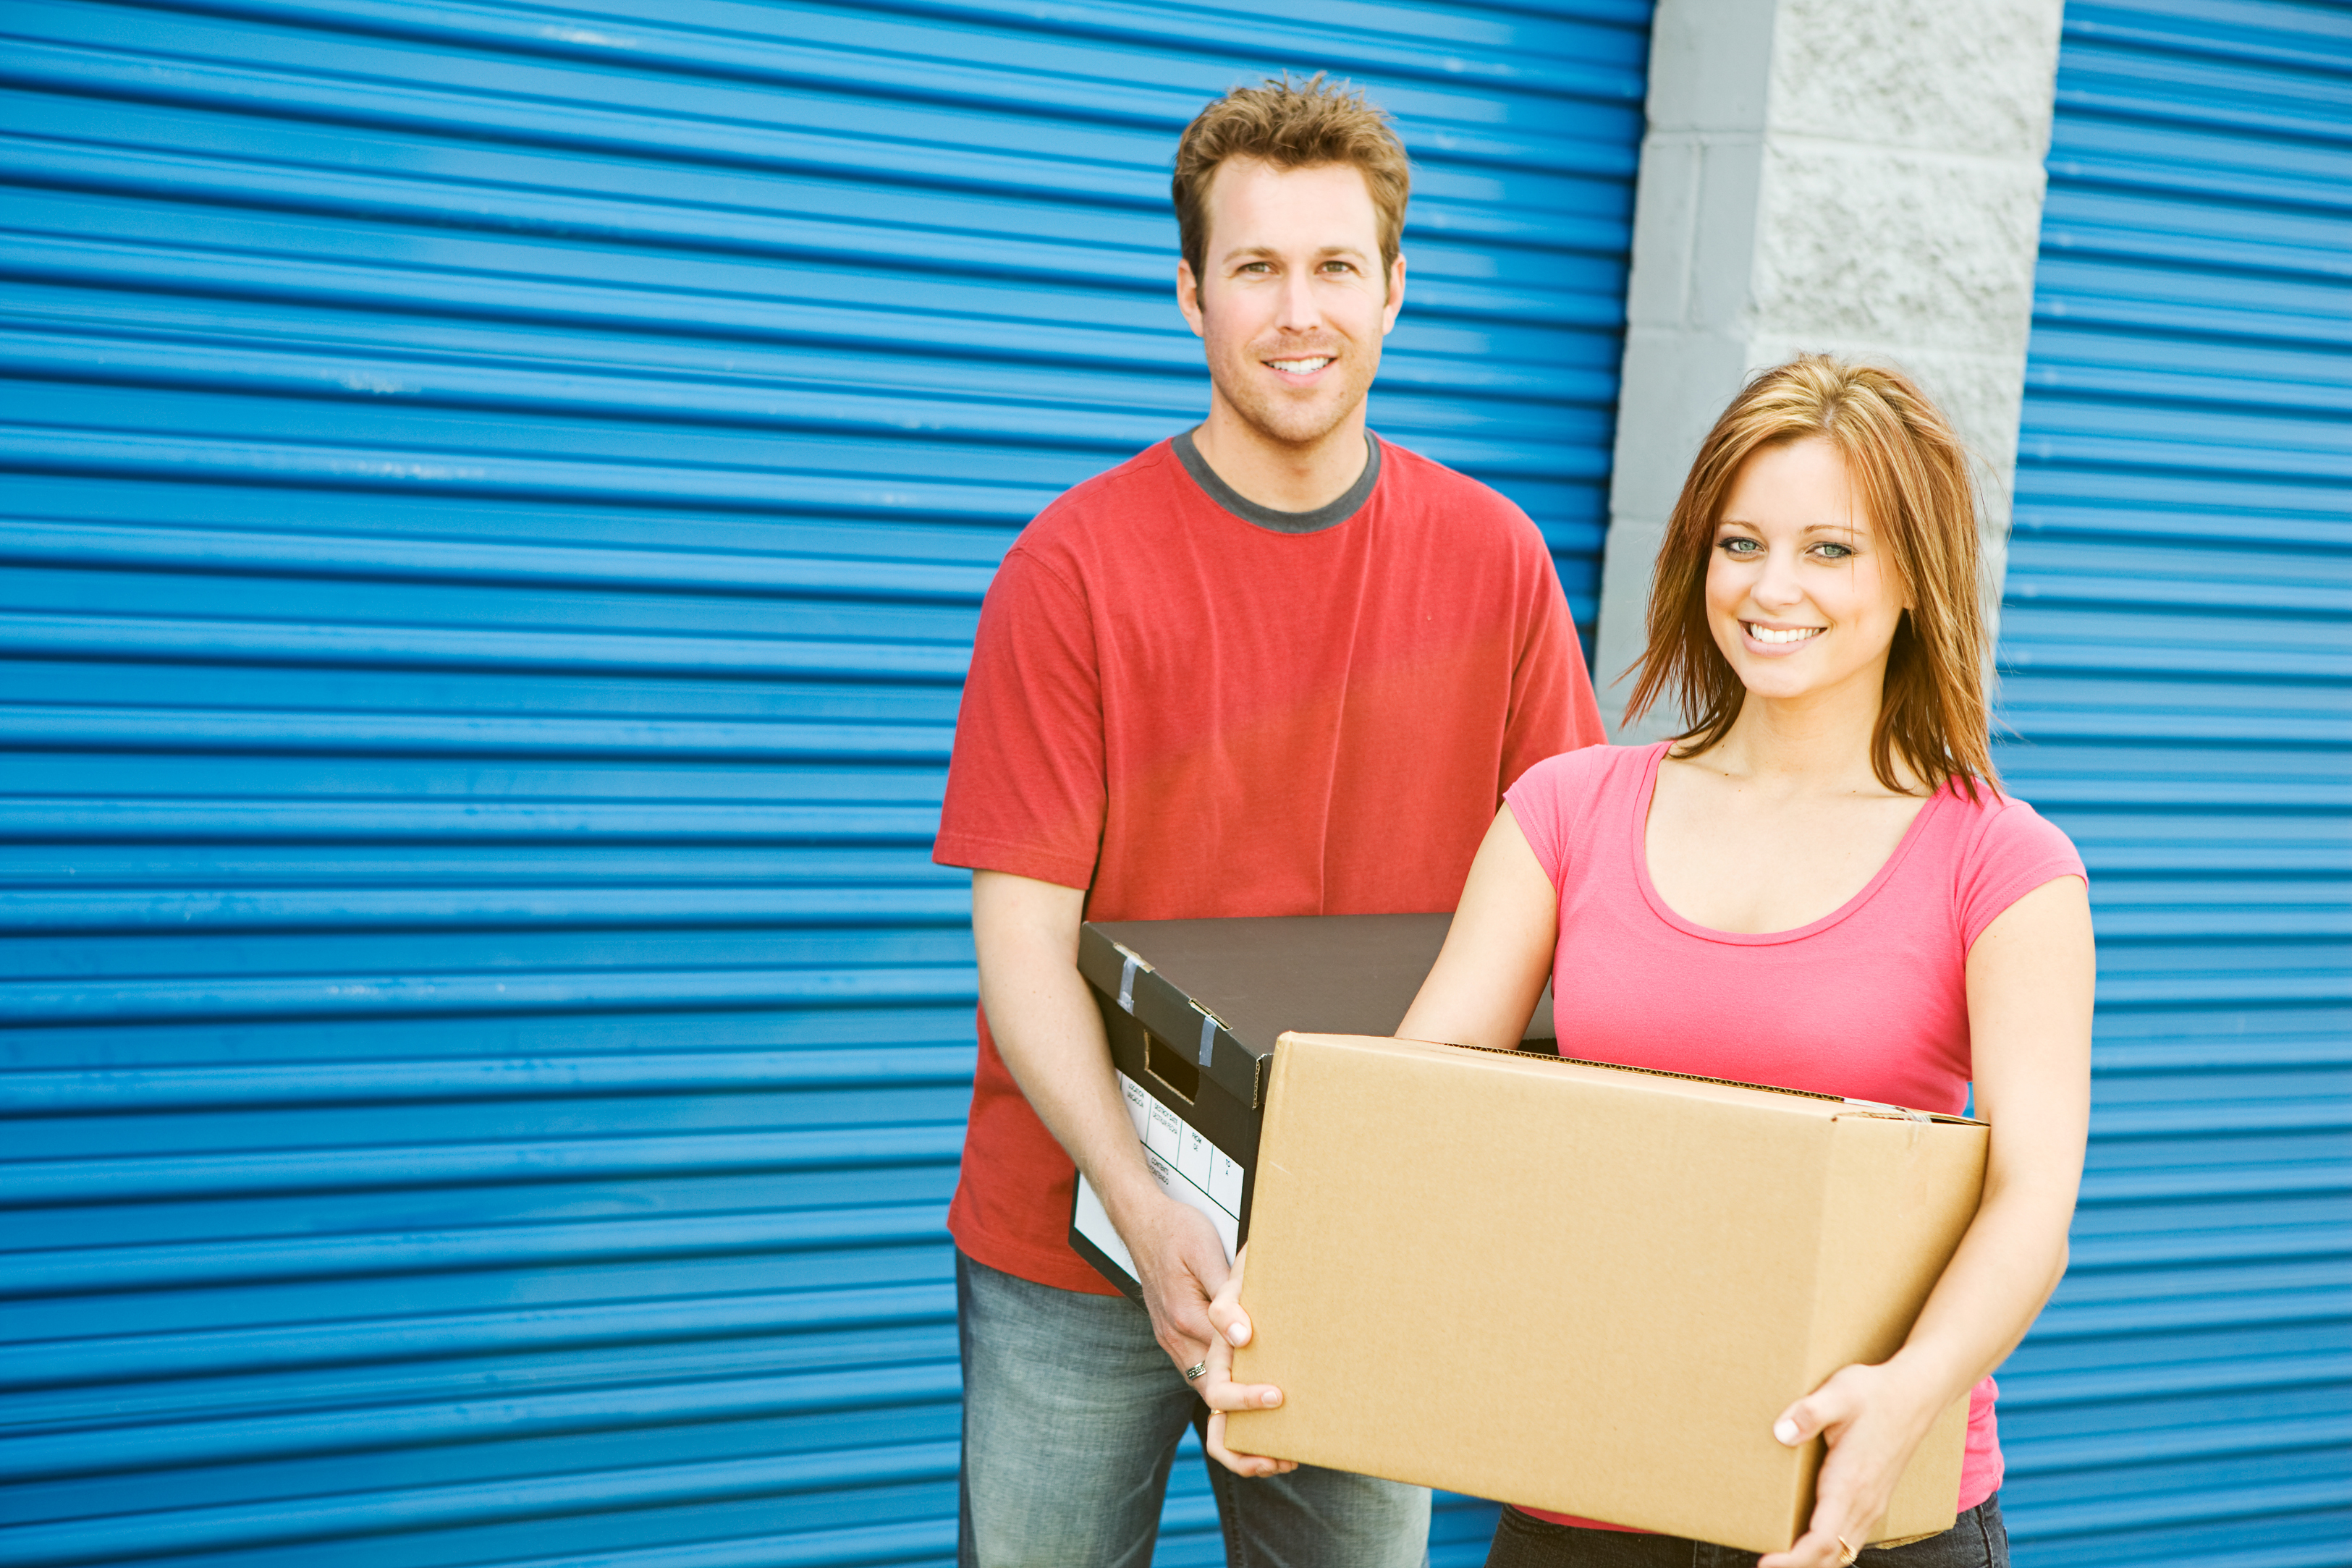 man and woman smiling and holding moving boxes